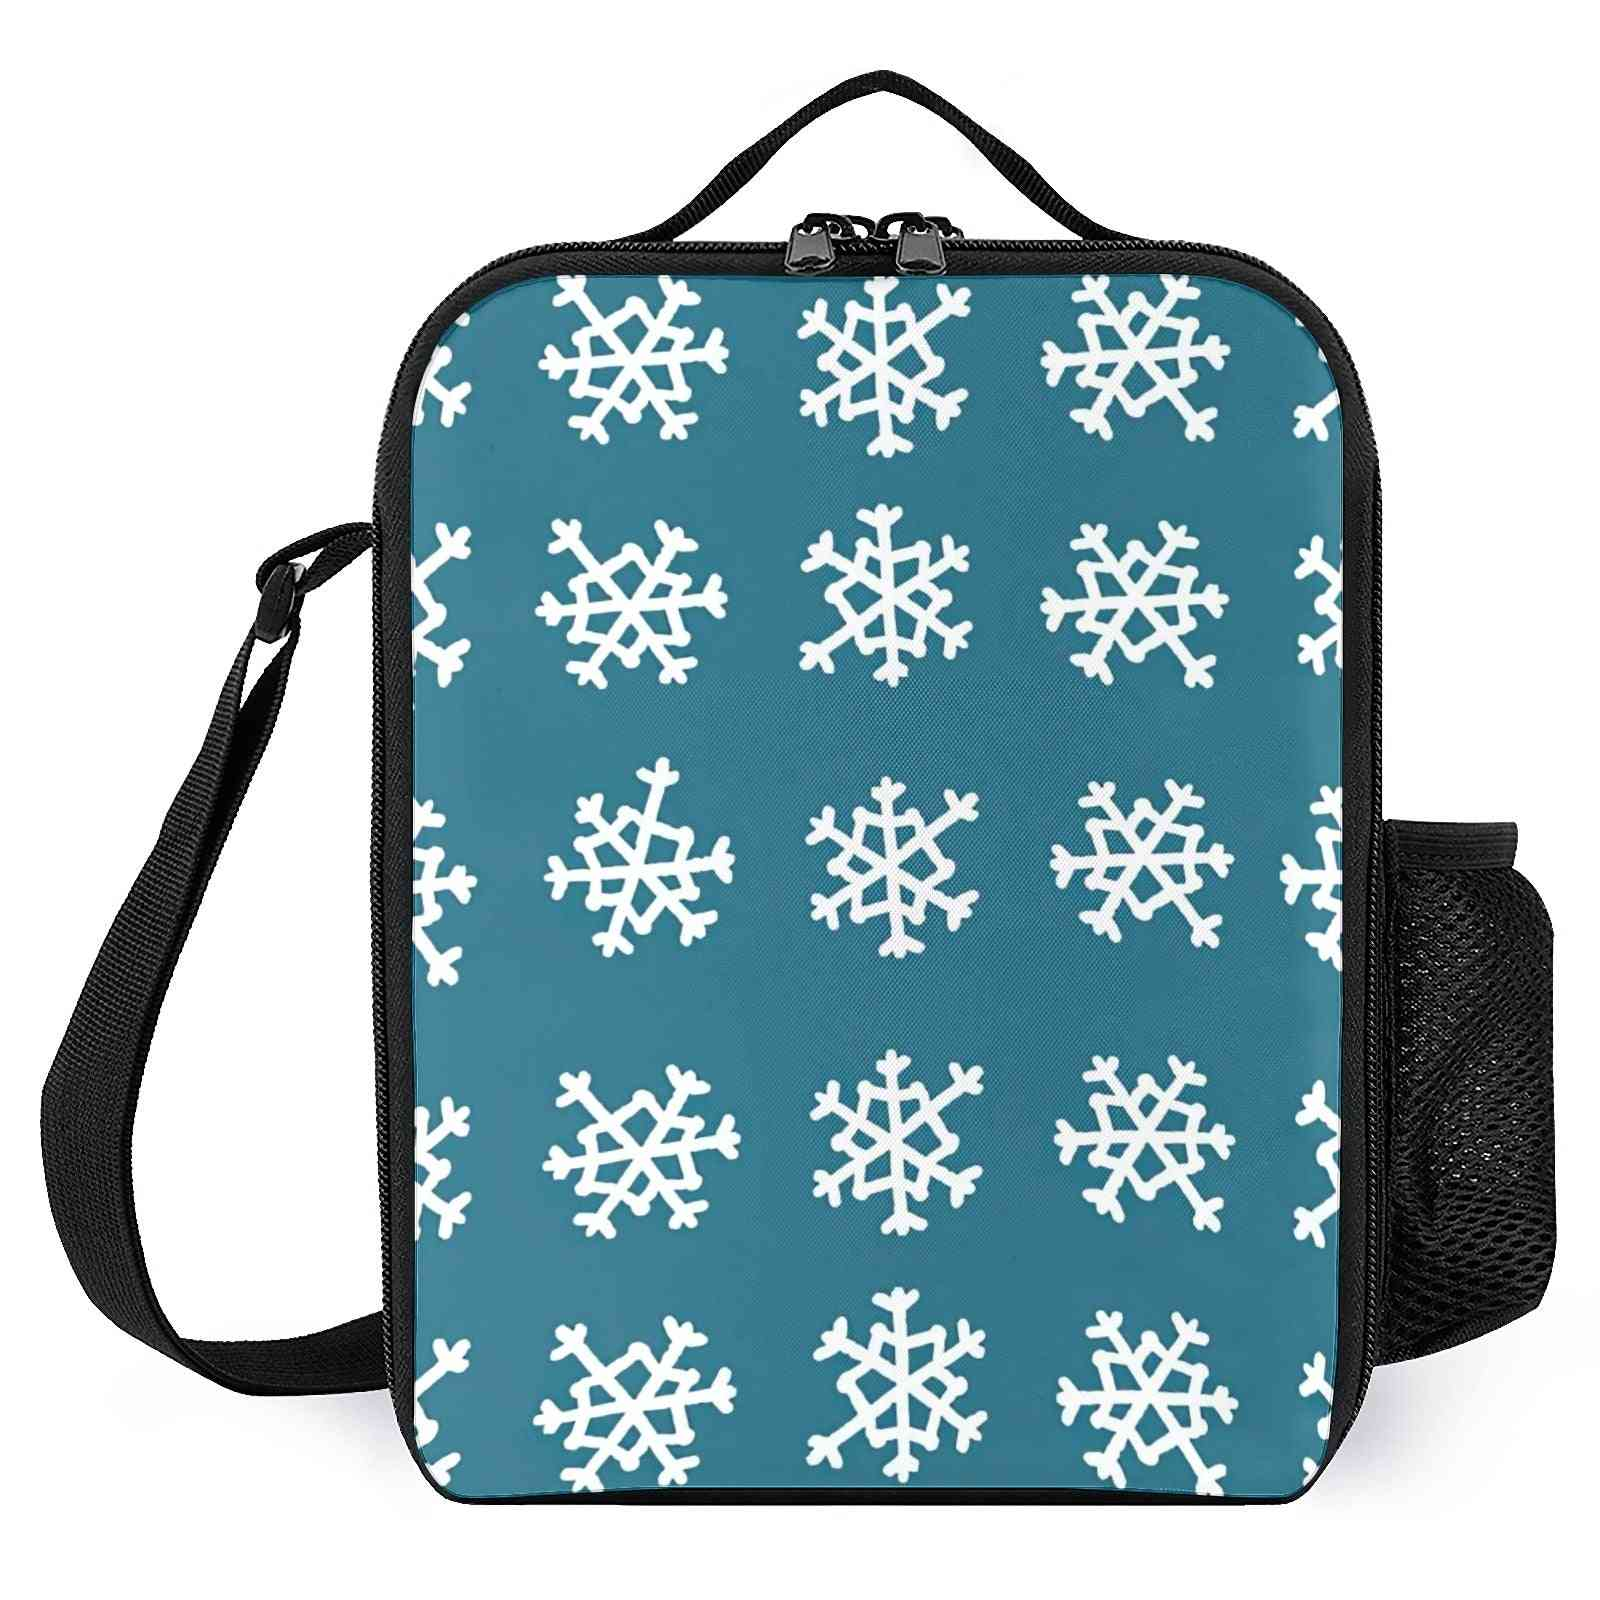 Snowflakes Printed Reusable-insulated Lunch Cooler Bags